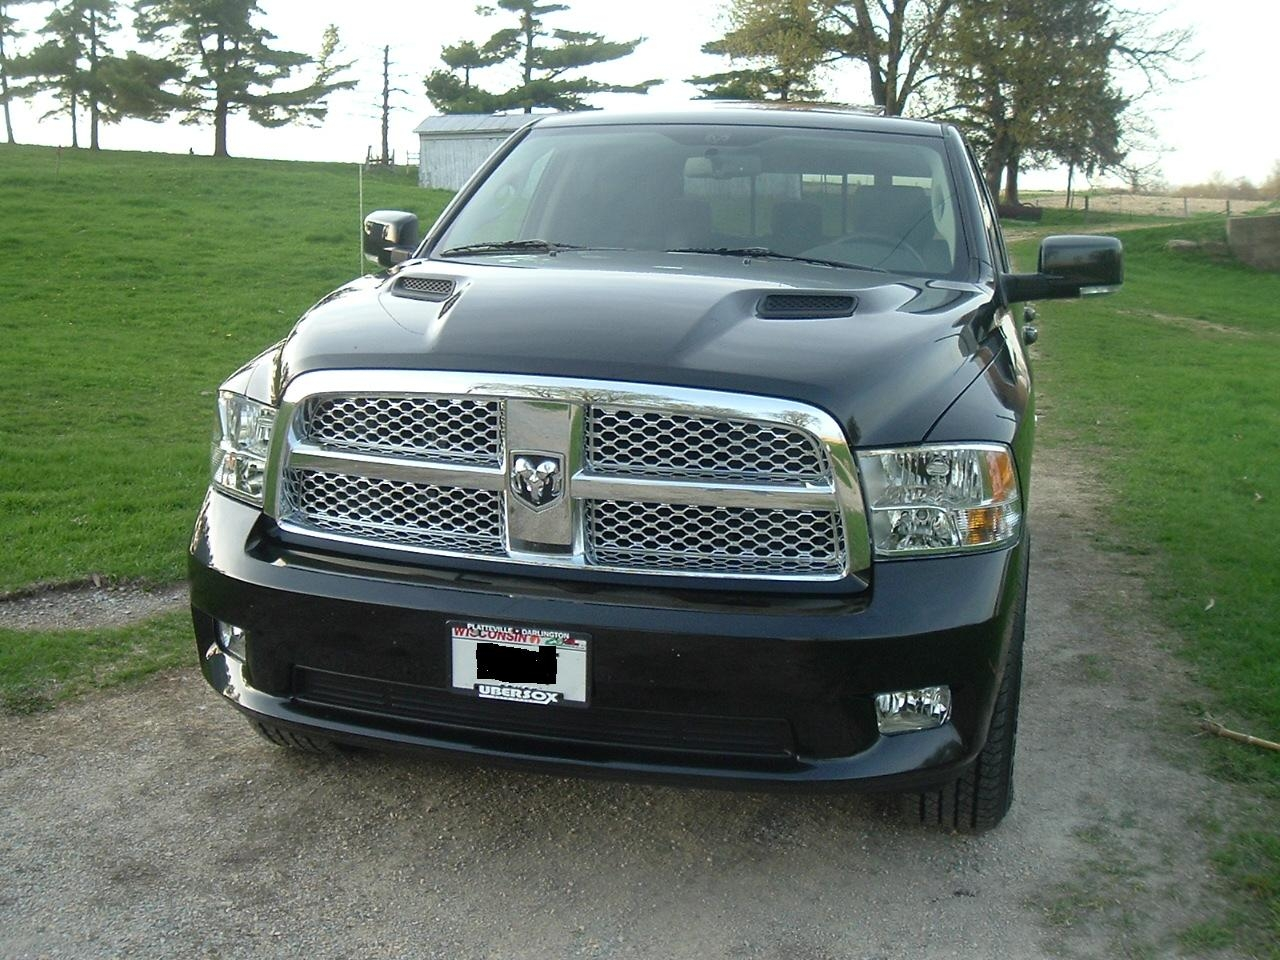 74brif 2010 dodge ram 1500 crew cabslt specs photos. Black Bedroom Furniture Sets. Home Design Ideas